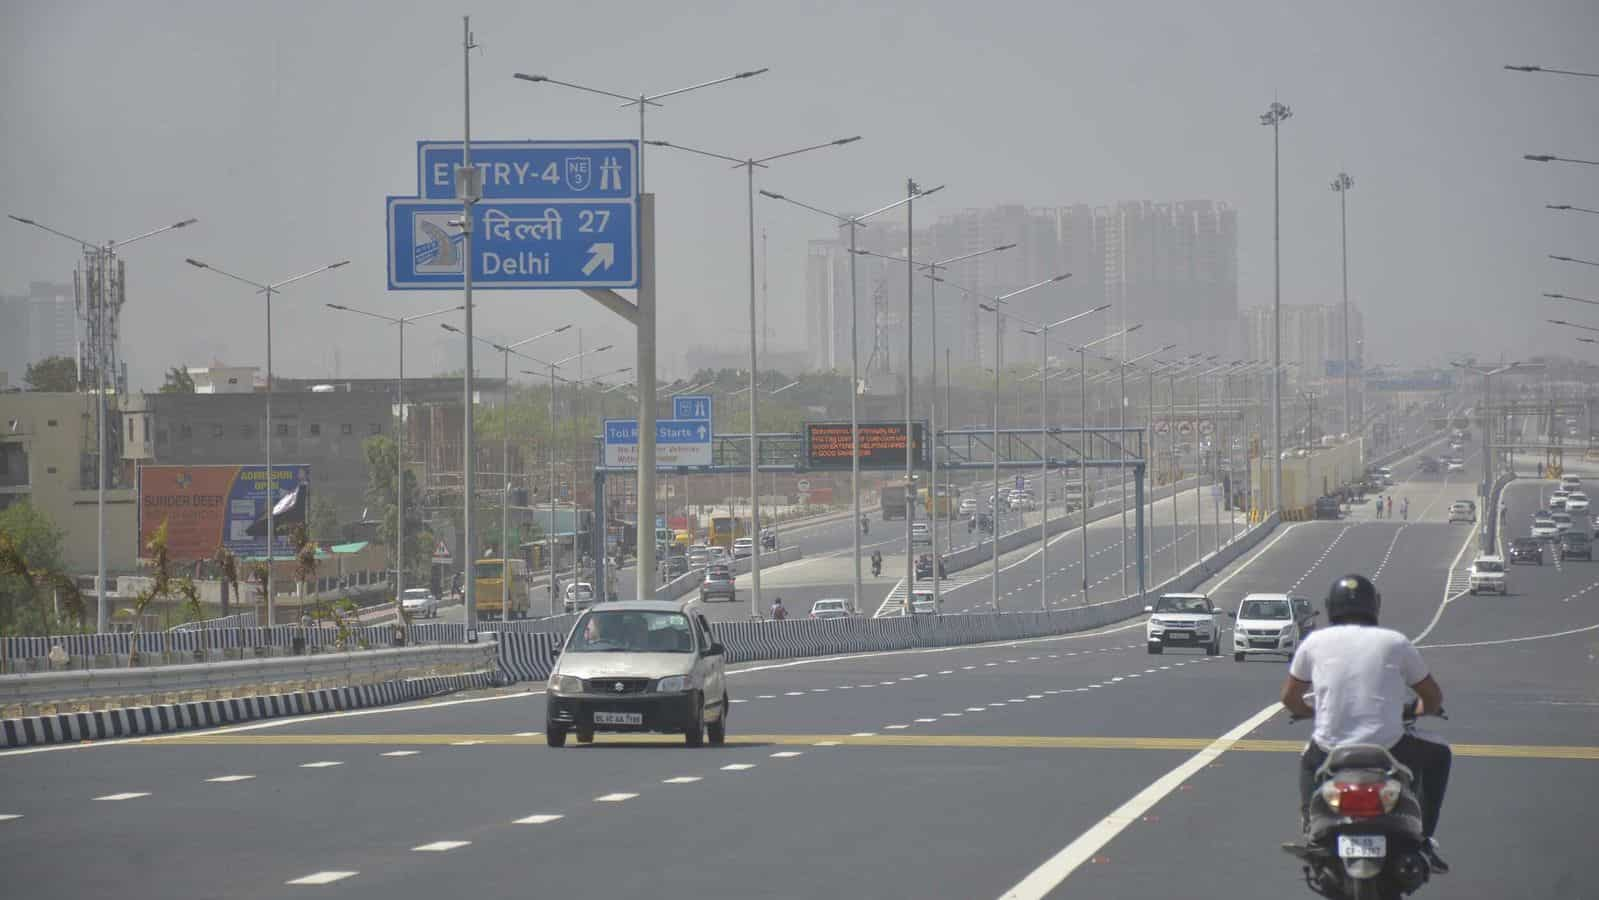 Delhi to Meerut in 45 minutes. 7 facts to know about this 'smart highway'